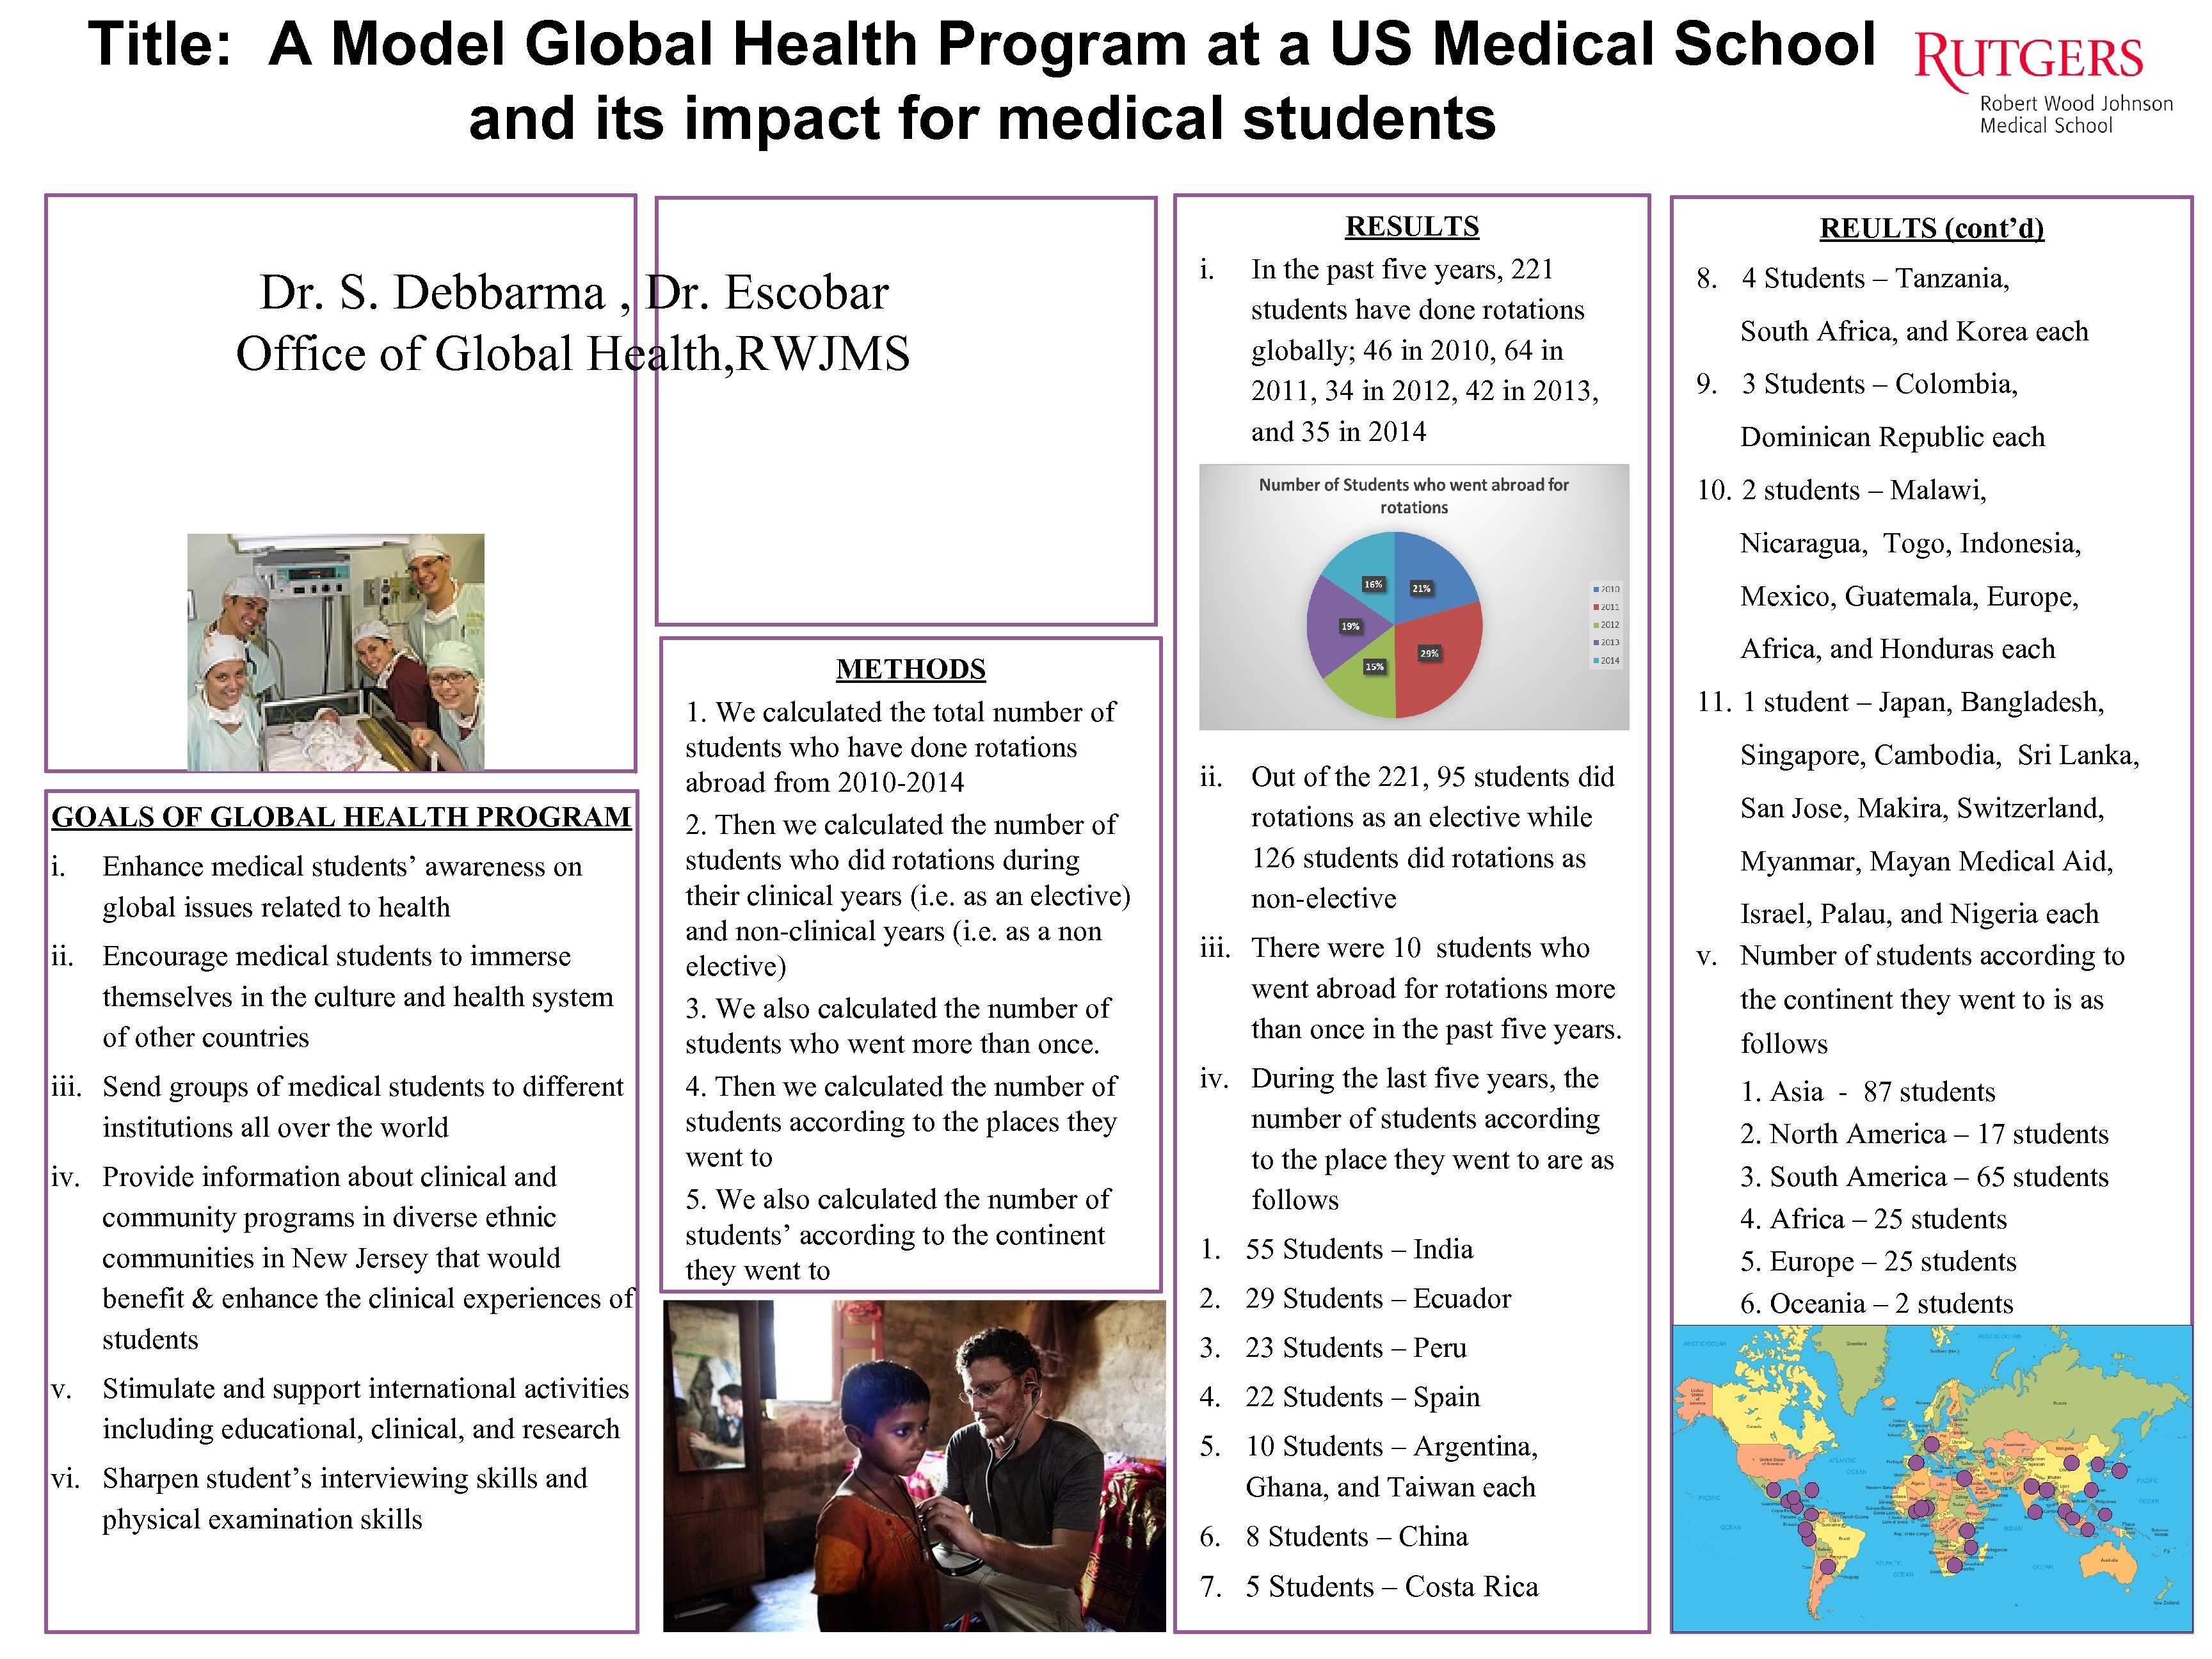 Title: A Model Global Health Program at a US Medical School and its impact